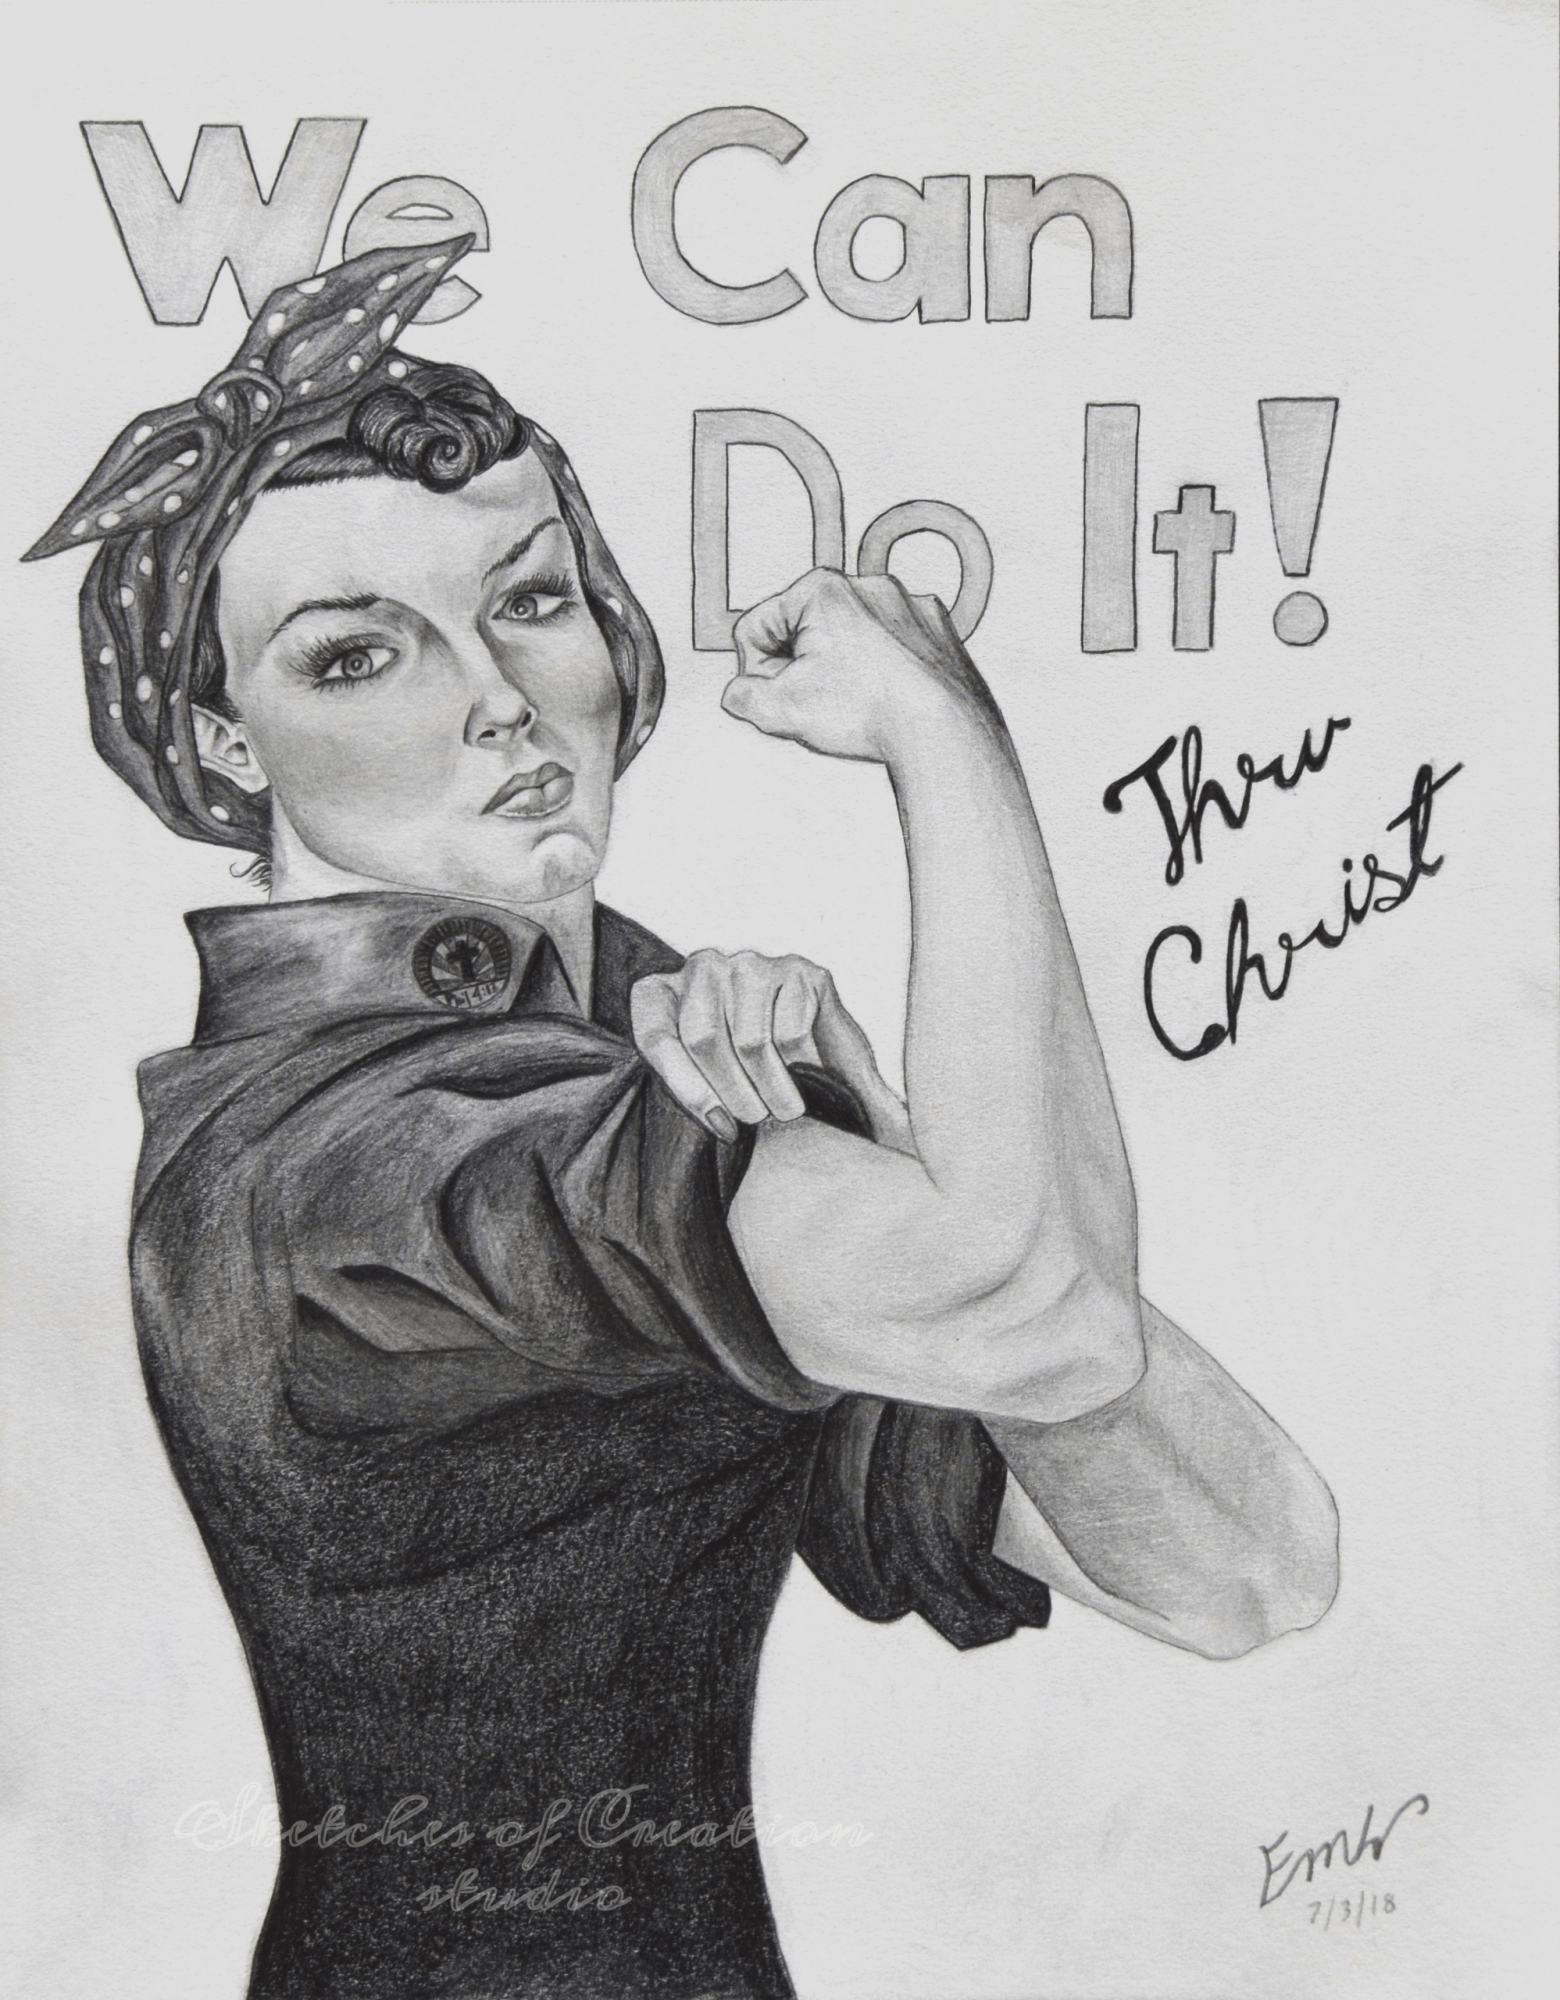 'Rosie' my version of  J. Howard Miller's 'We Can Do It' poster. 8x10 inches. Completed July 2018